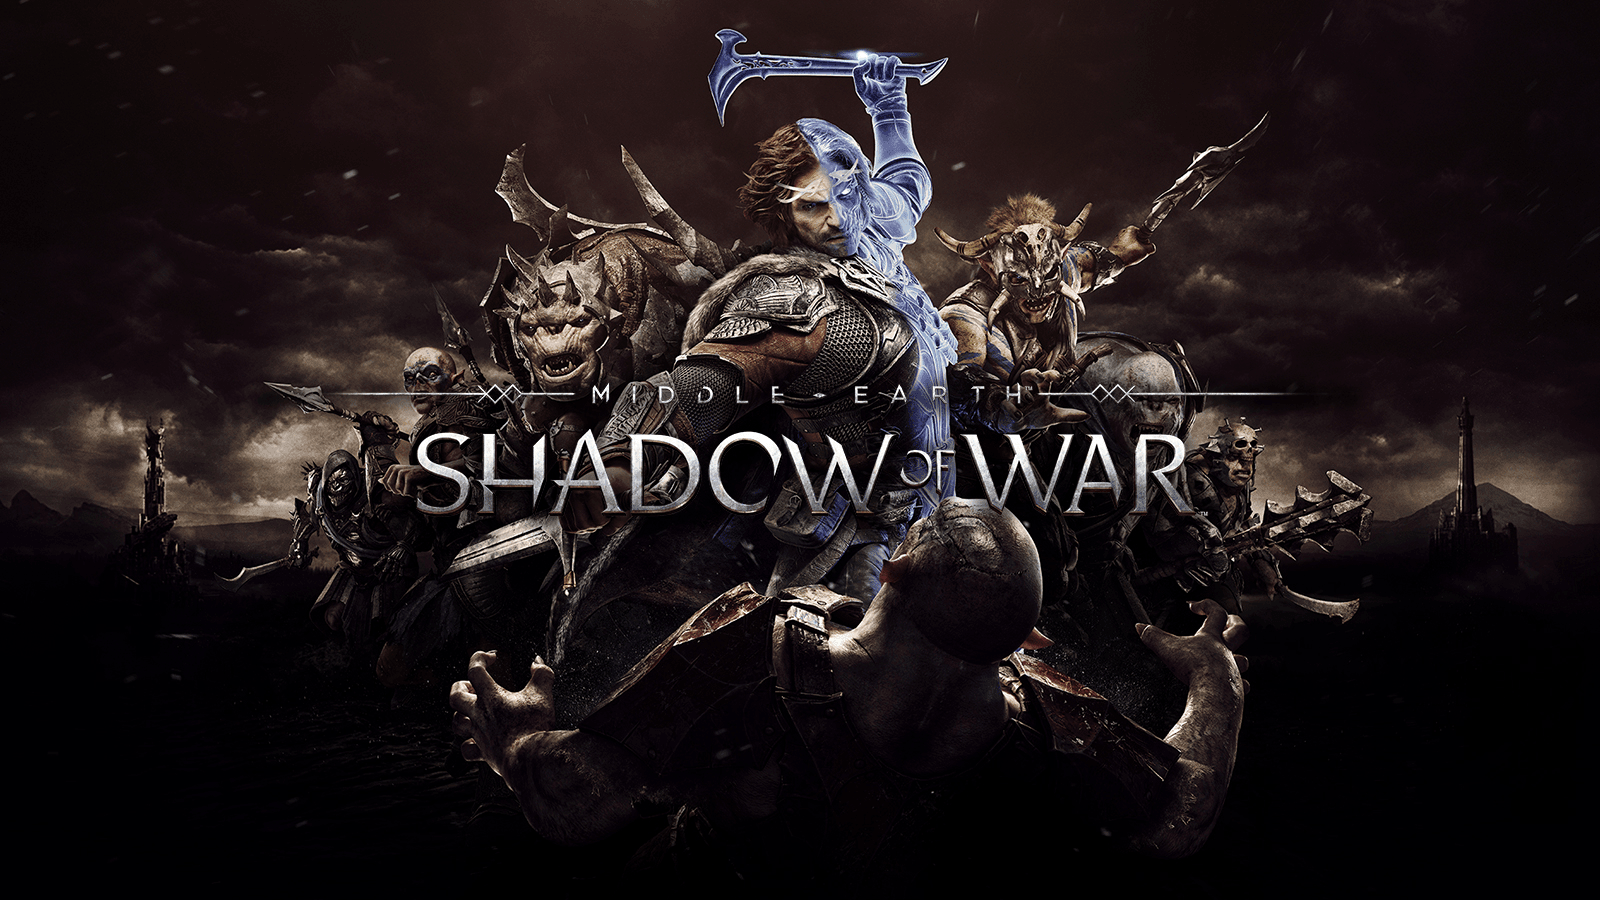 Middle-earth: Shadow of War – Definitive Edition announced, arrives in August